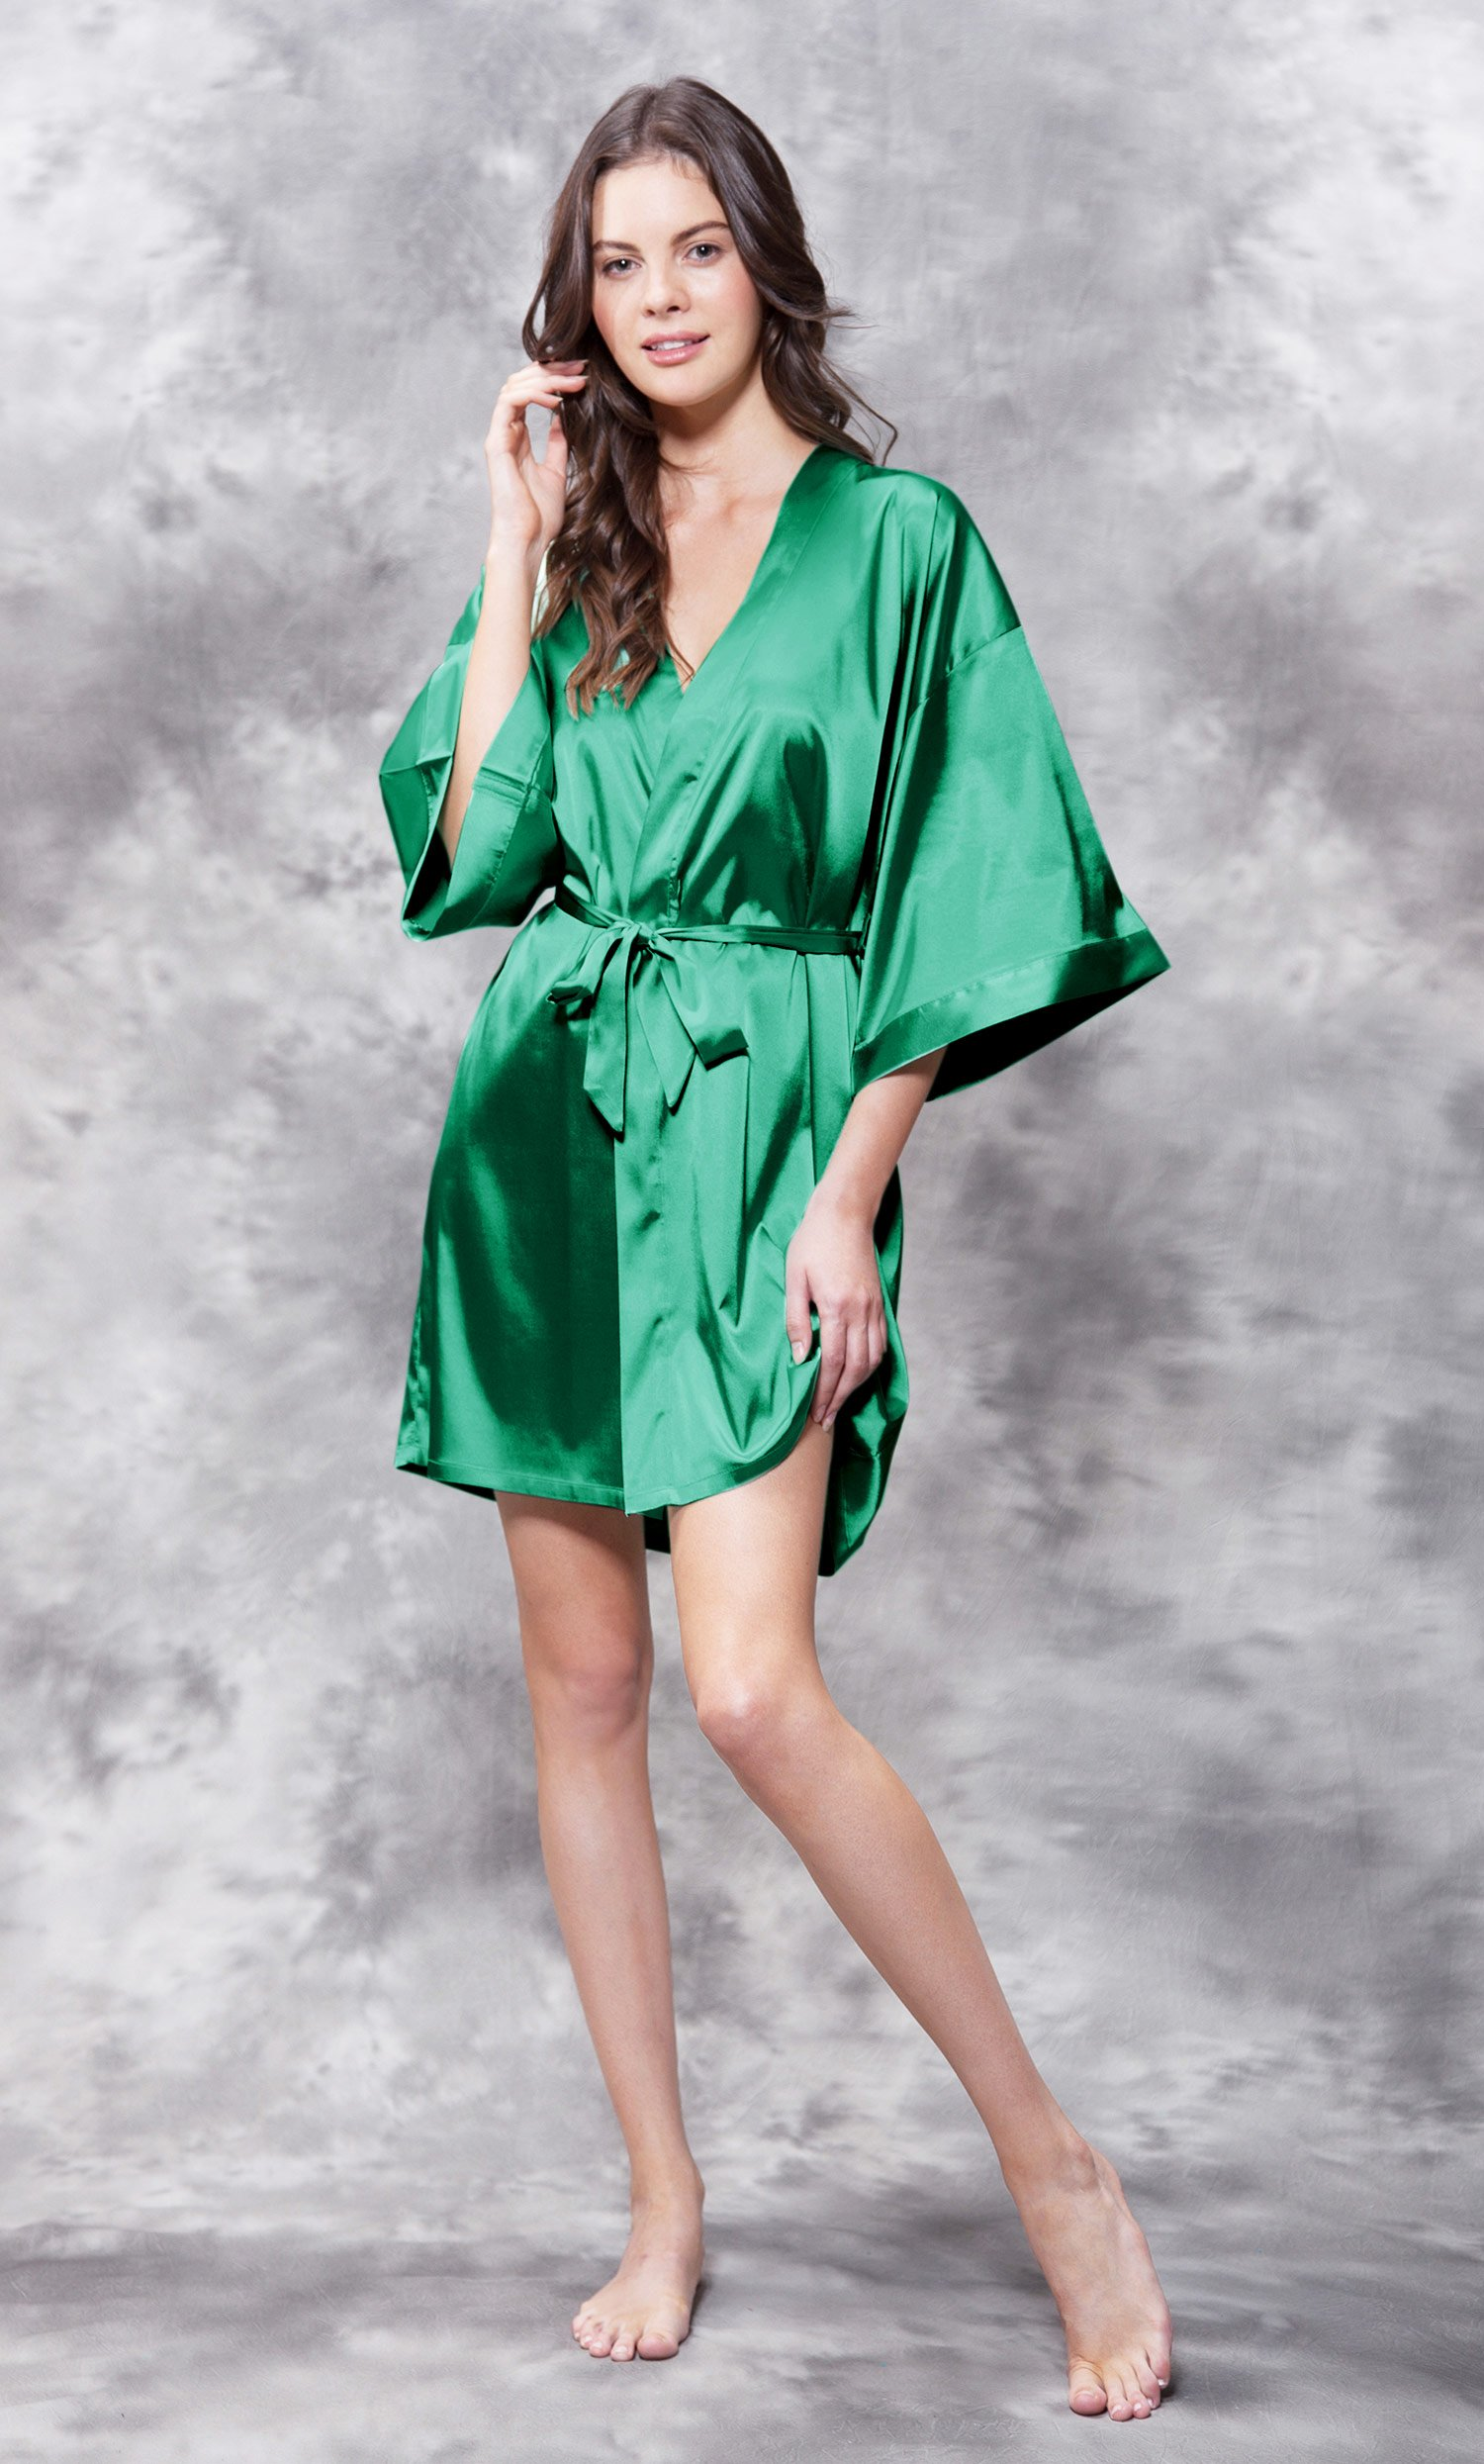 Mother of the Bride Clear Rhinestone Satin Kimono Lush Meadow Green Short Robe-Robemart.com